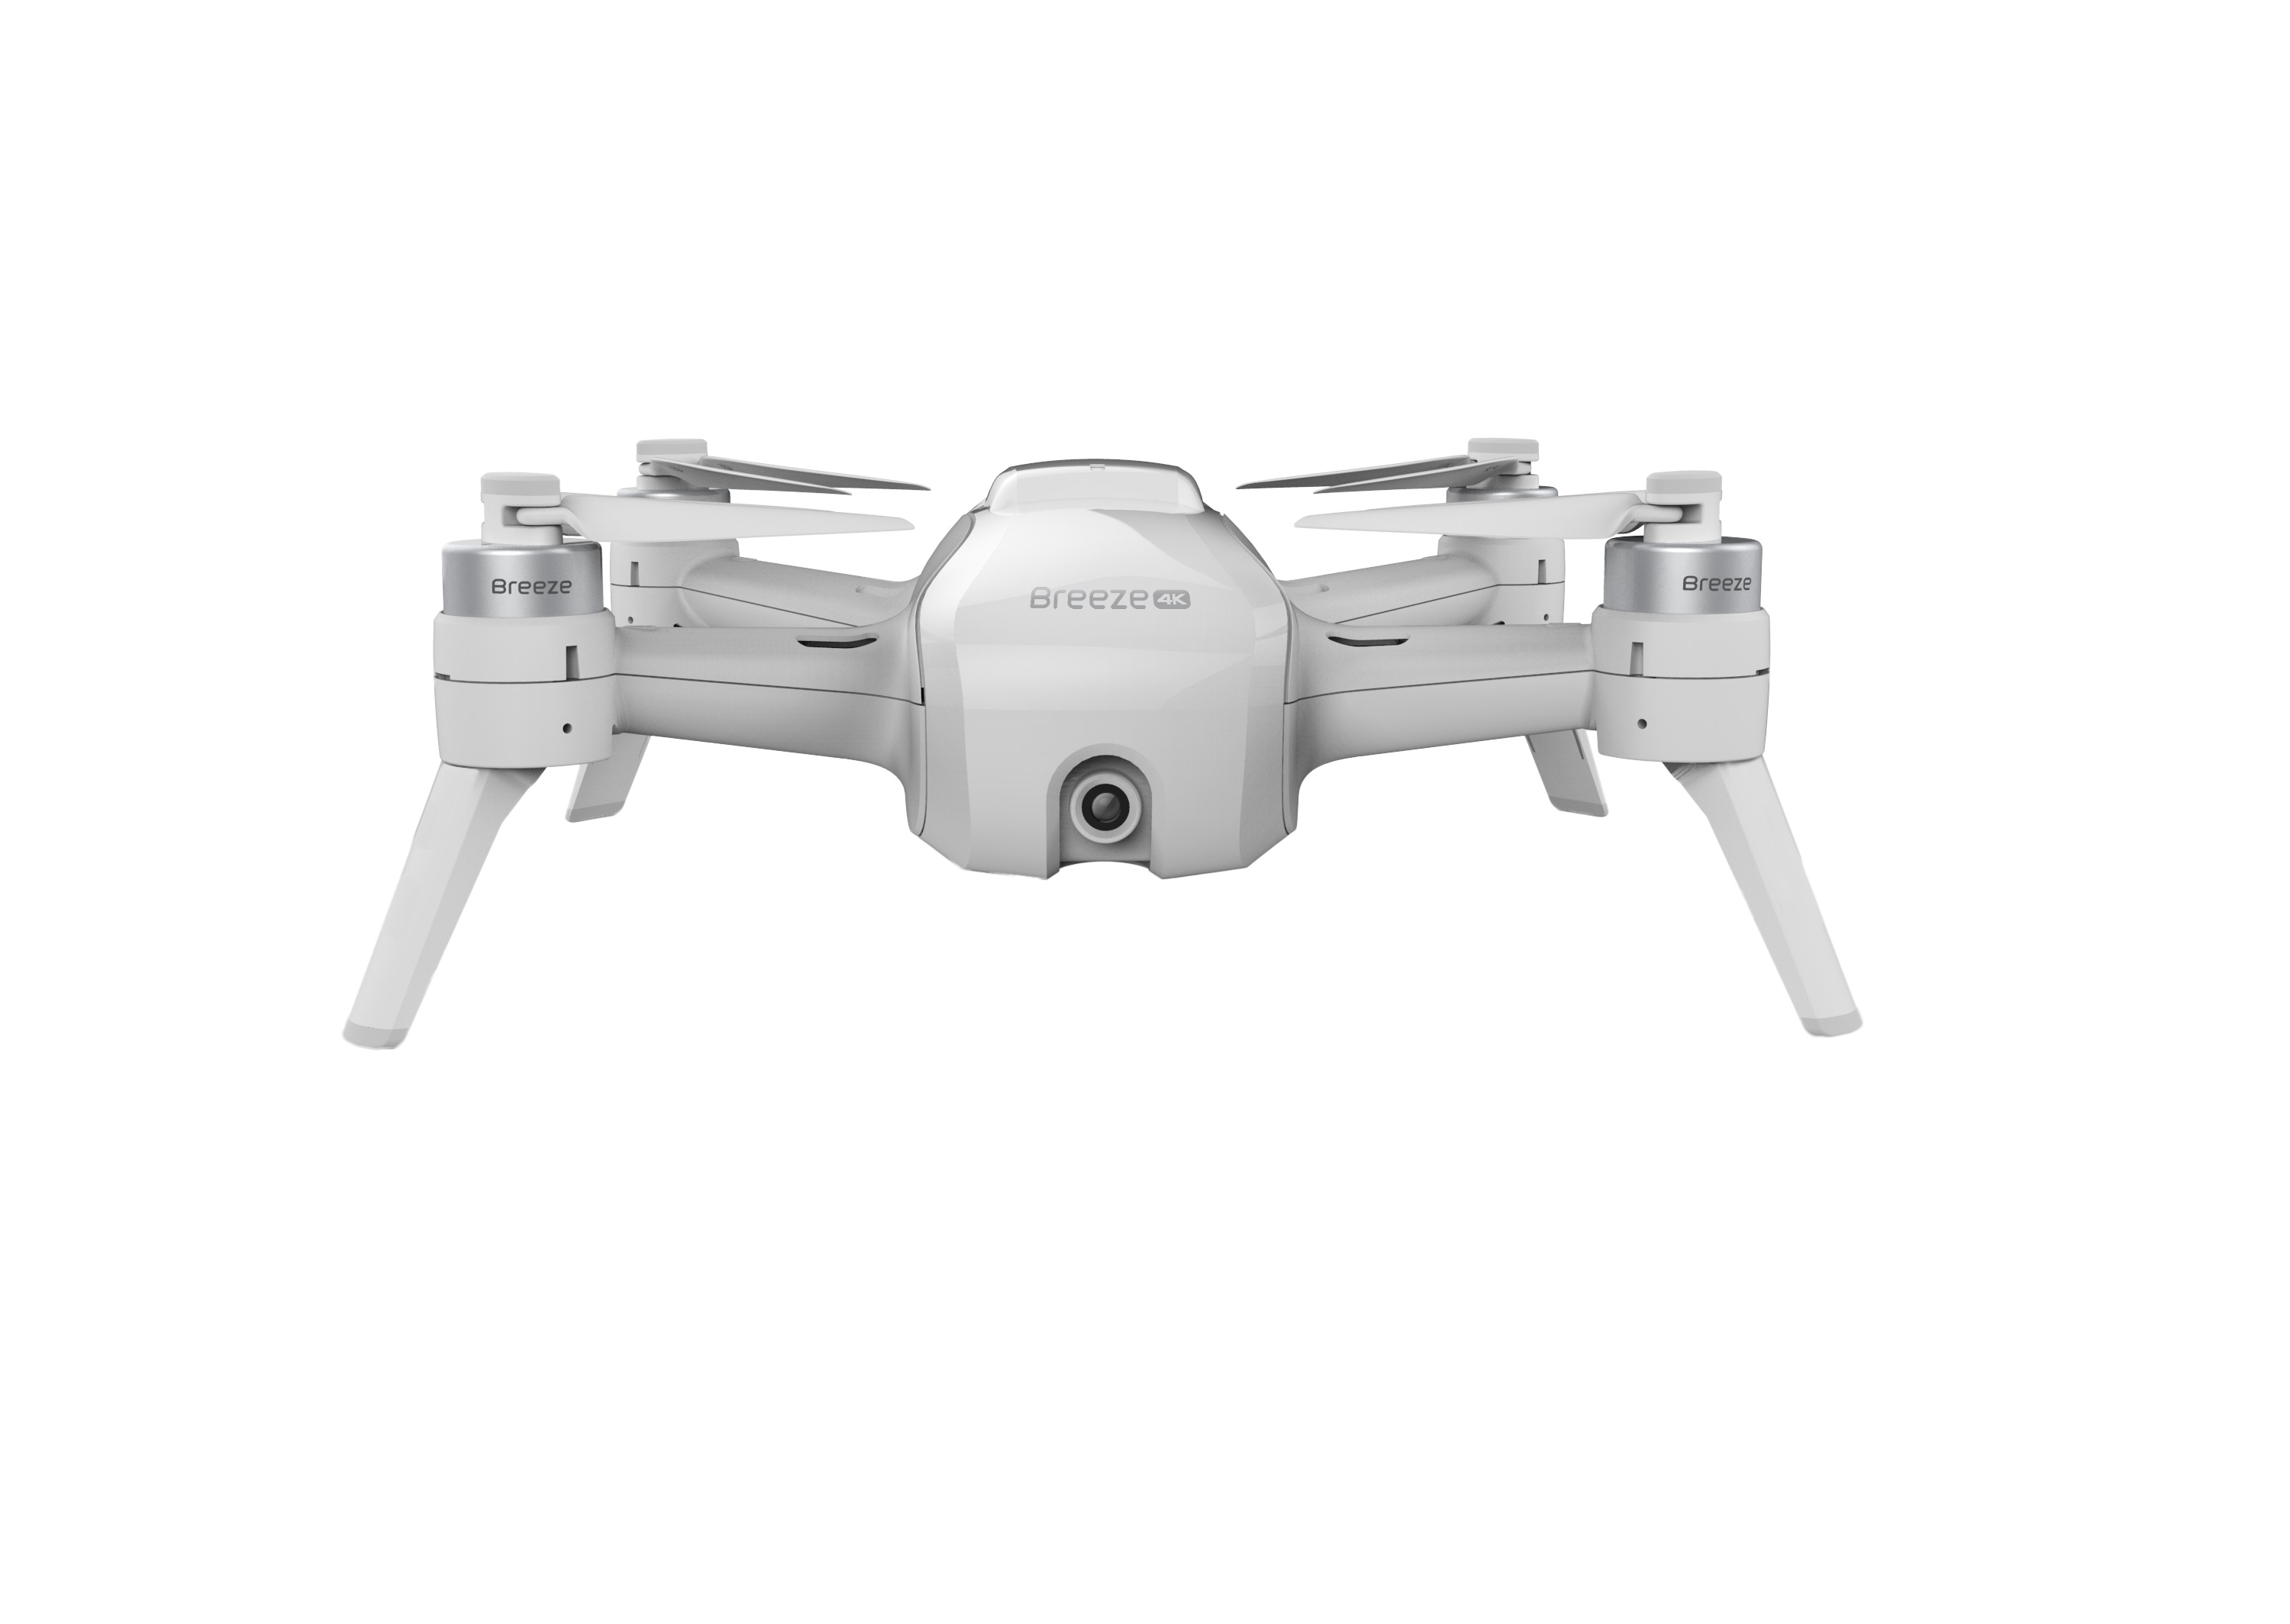 Yuneec Breeze Drone With 4K Camera (Bluetooth Controller Included) by Yuneec